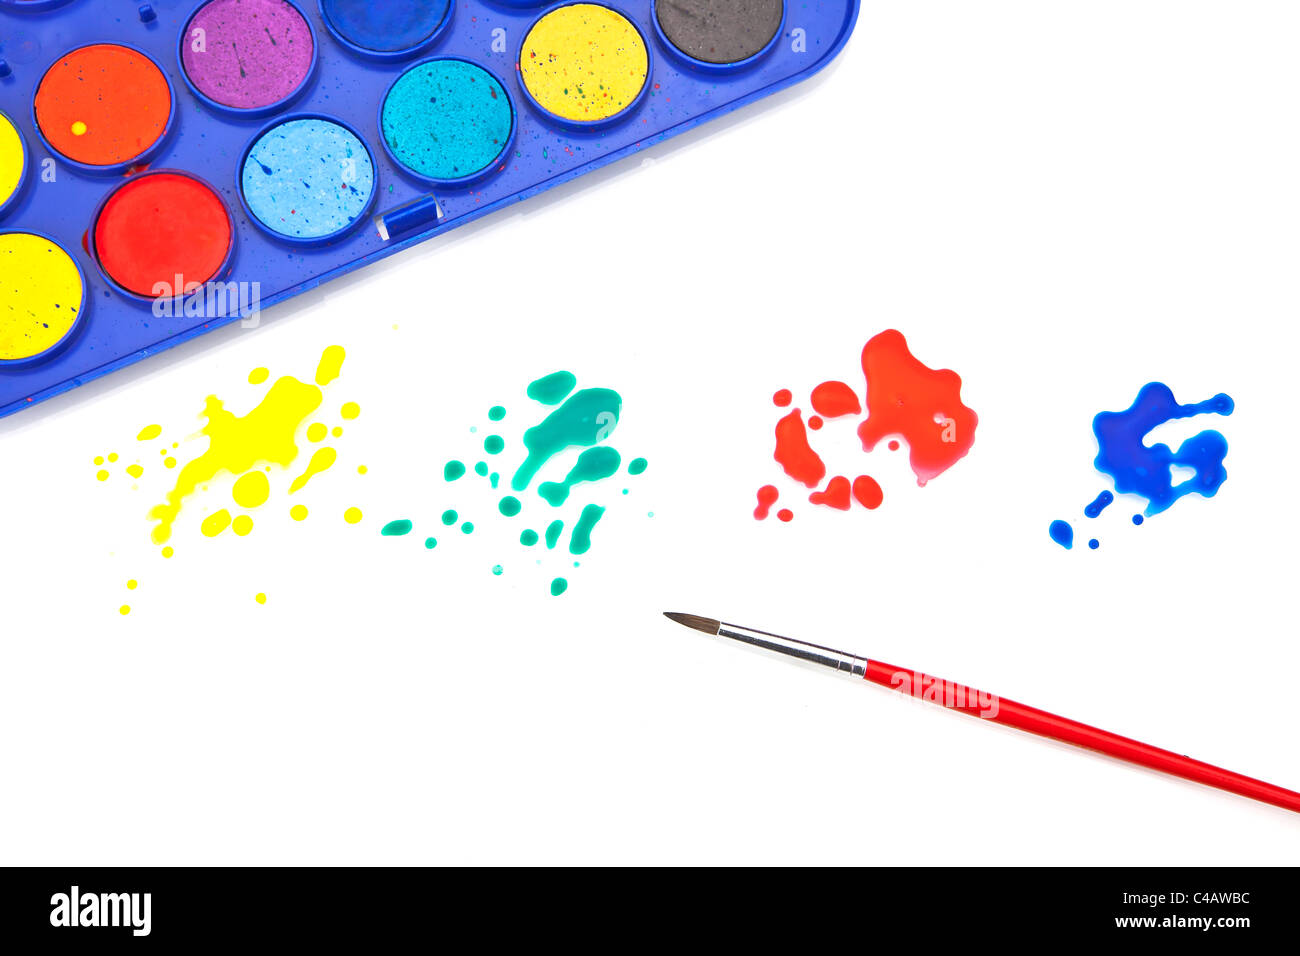 Splashes of color and a paint box with water colors and a brush - Stock Image